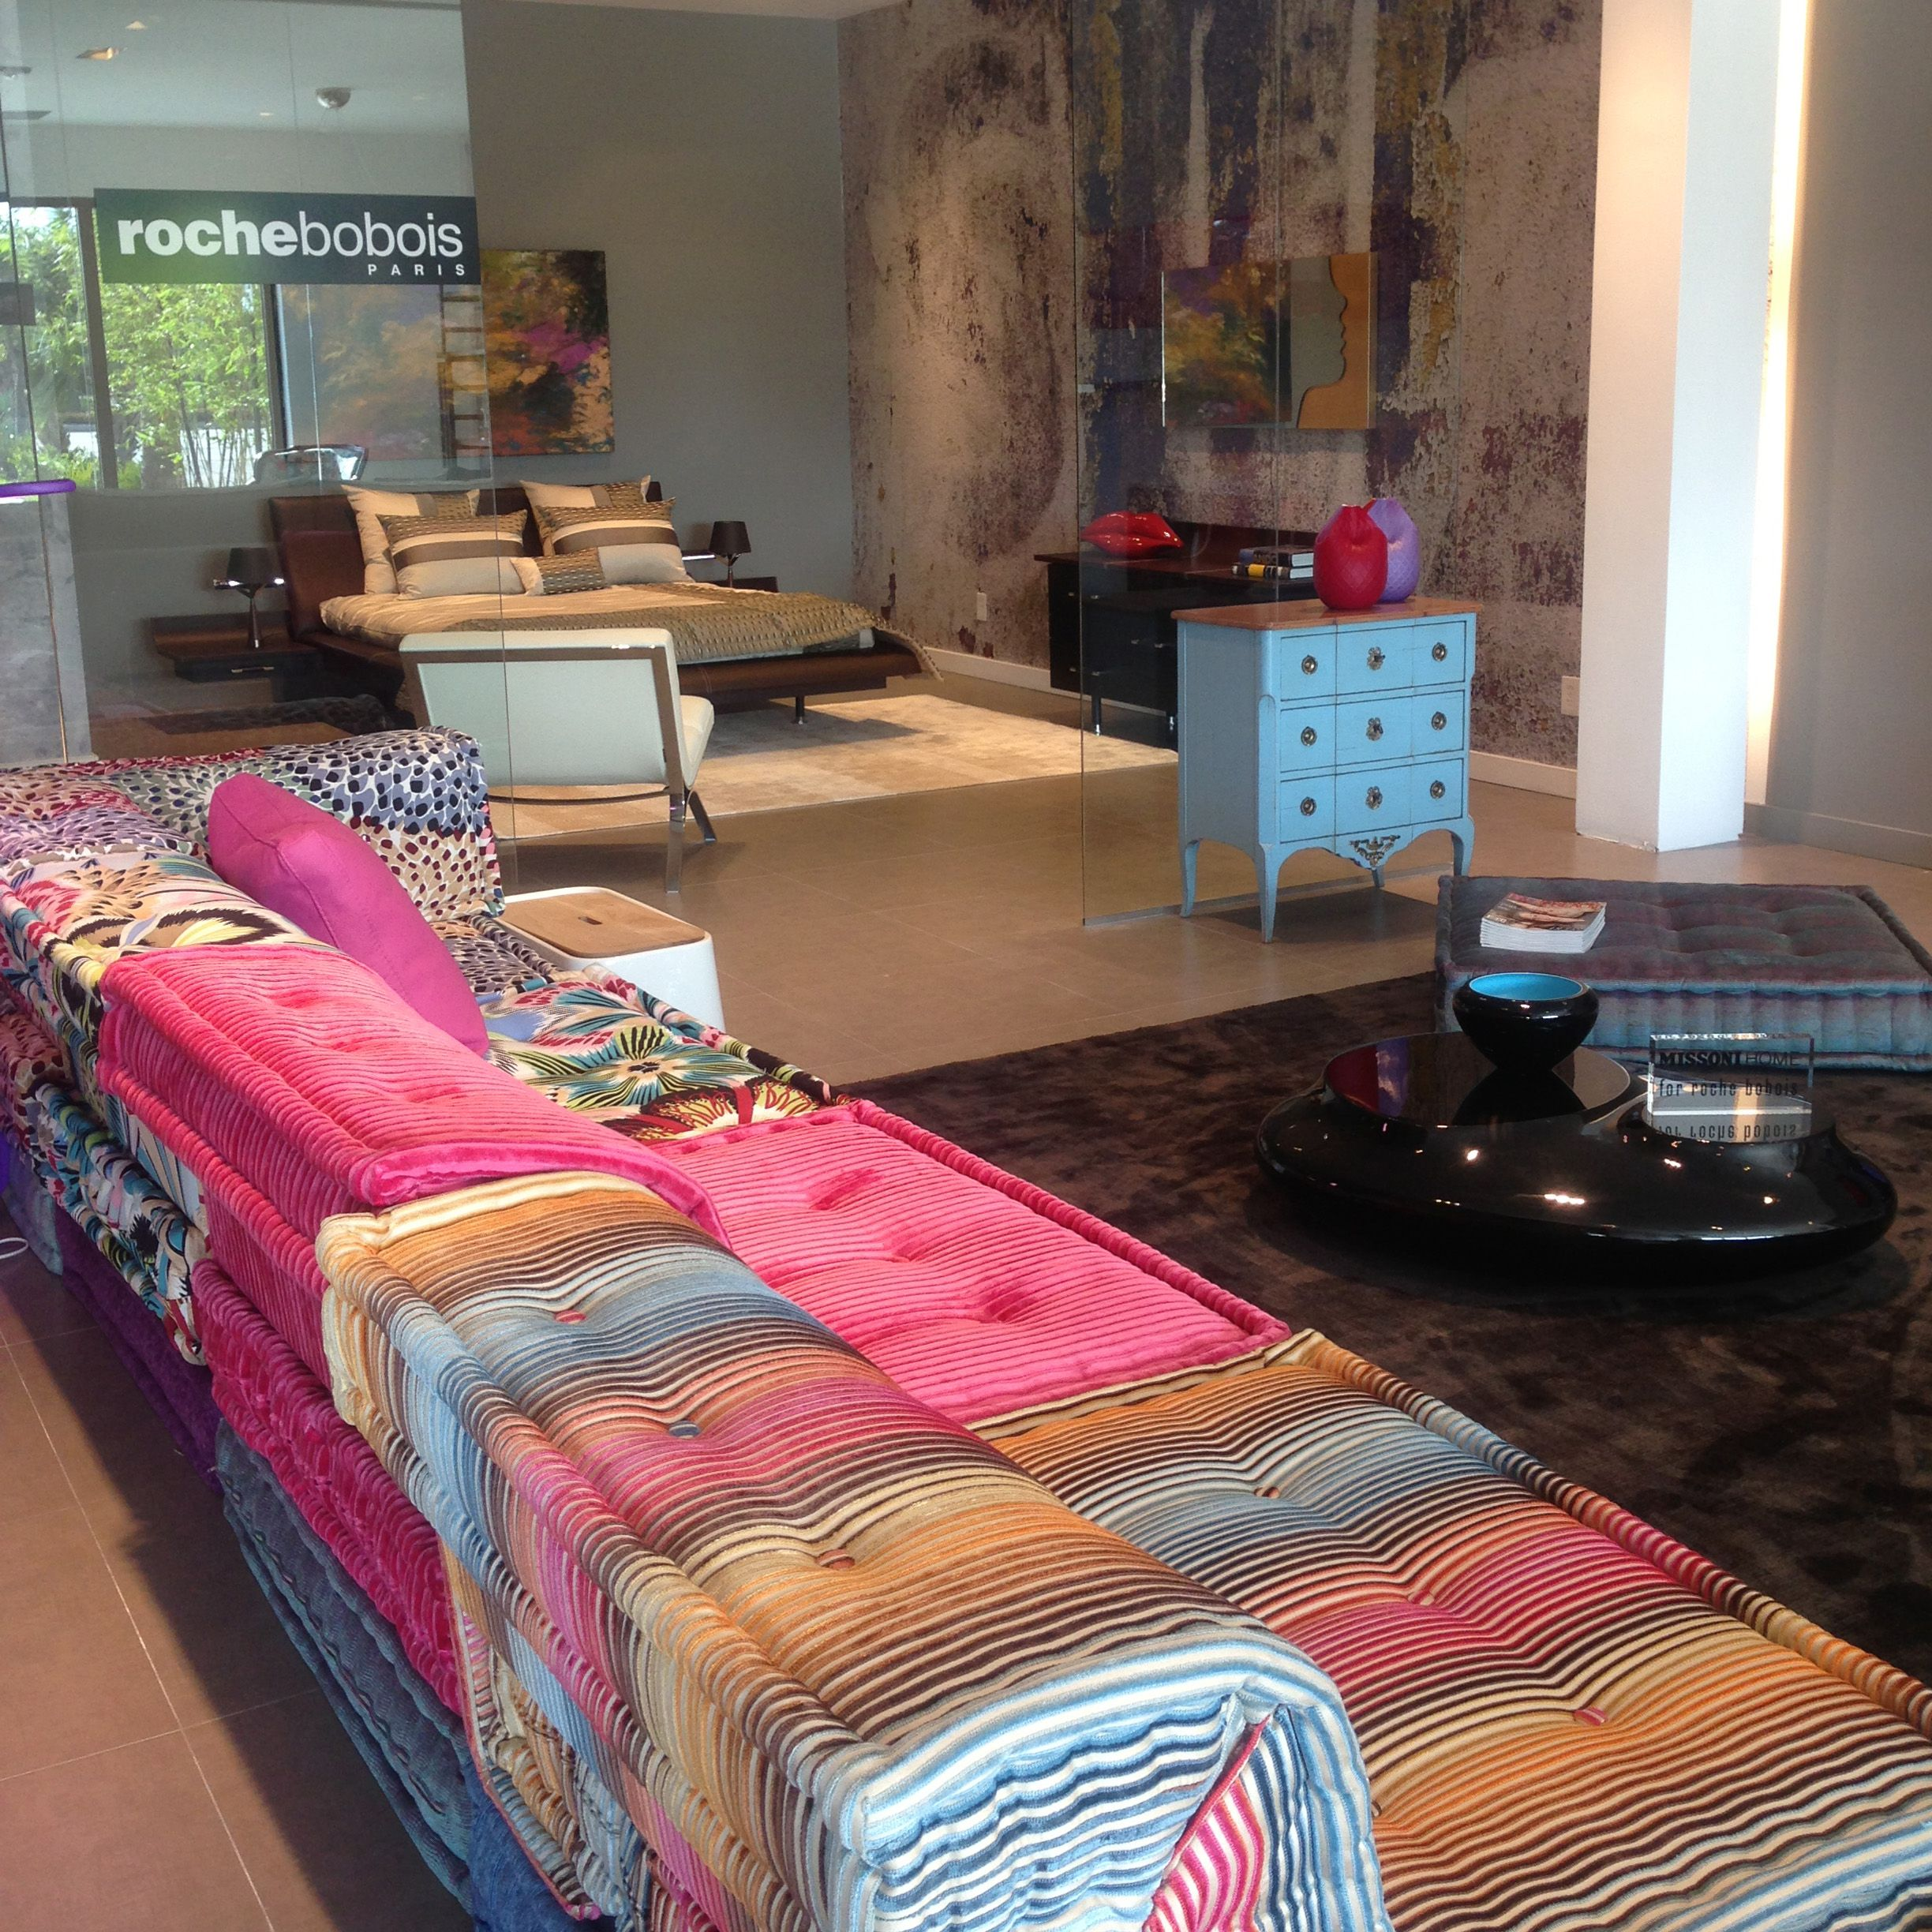 Missoni Home Furniture London: Roche Bobois Grand Opening Celebration At The North Palm